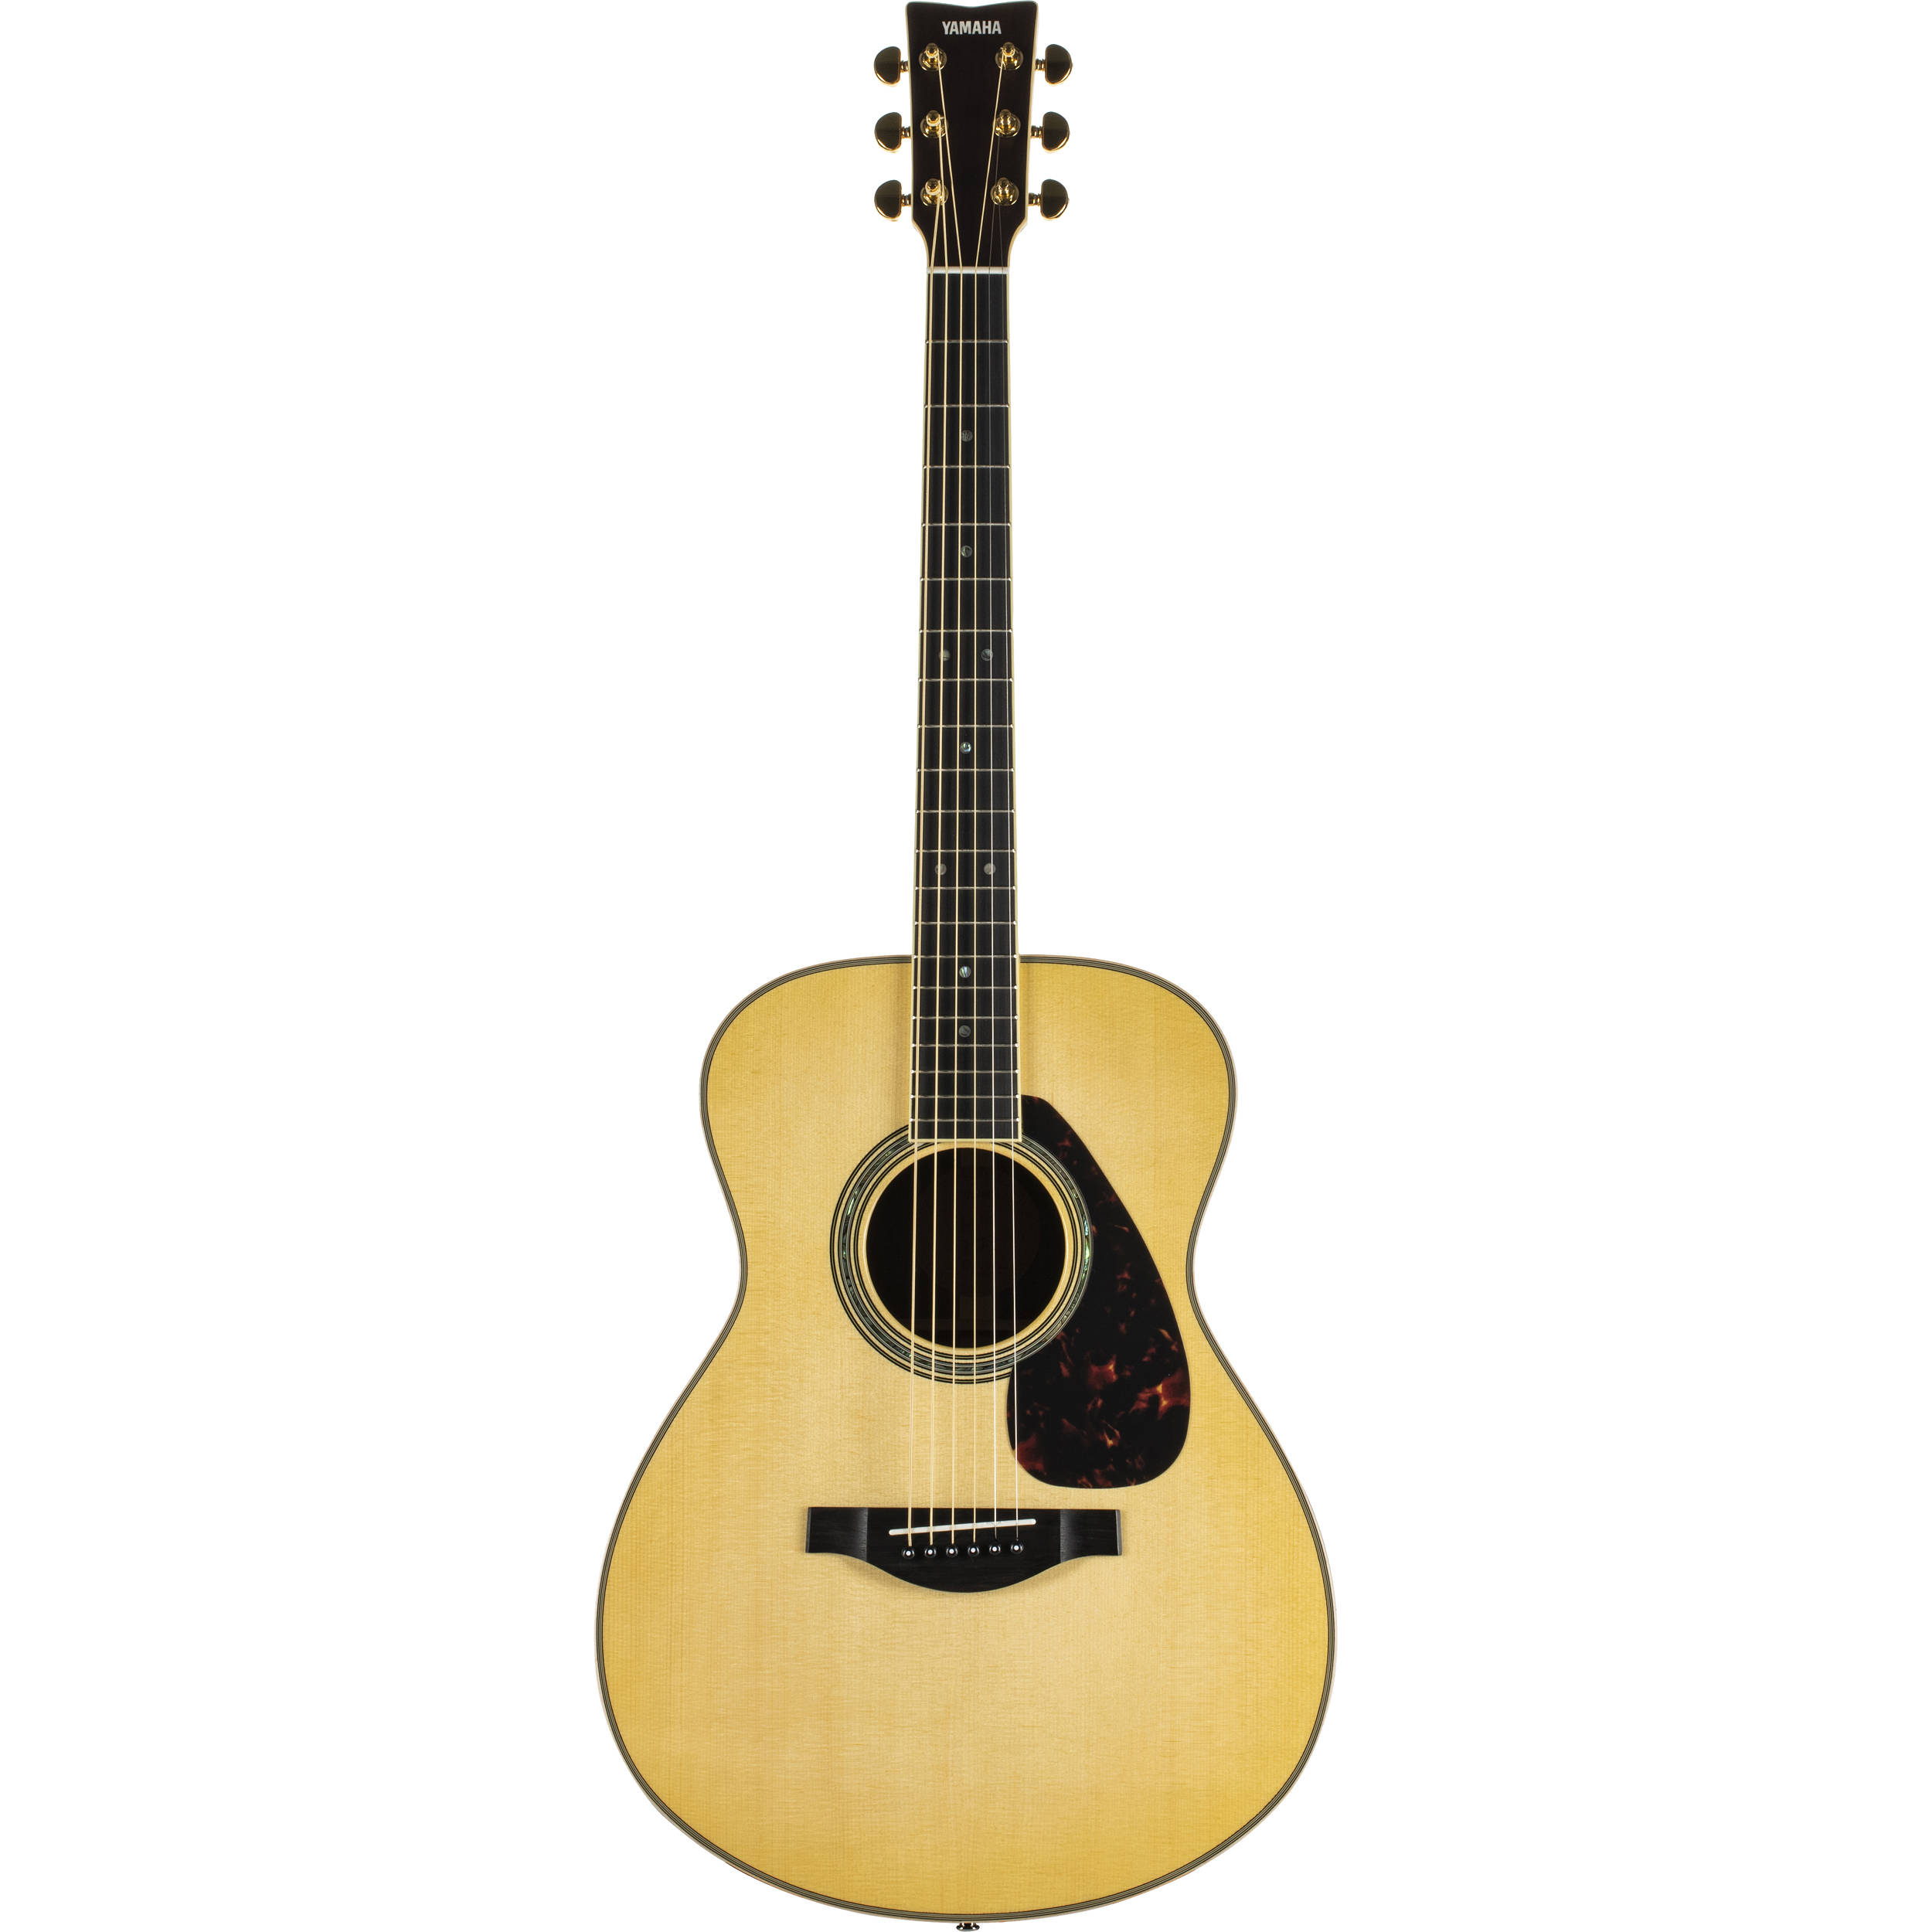 yamaha ls16hb small body acoustic guitar natural ls16hb b h. Black Bedroom Furniture Sets. Home Design Ideas